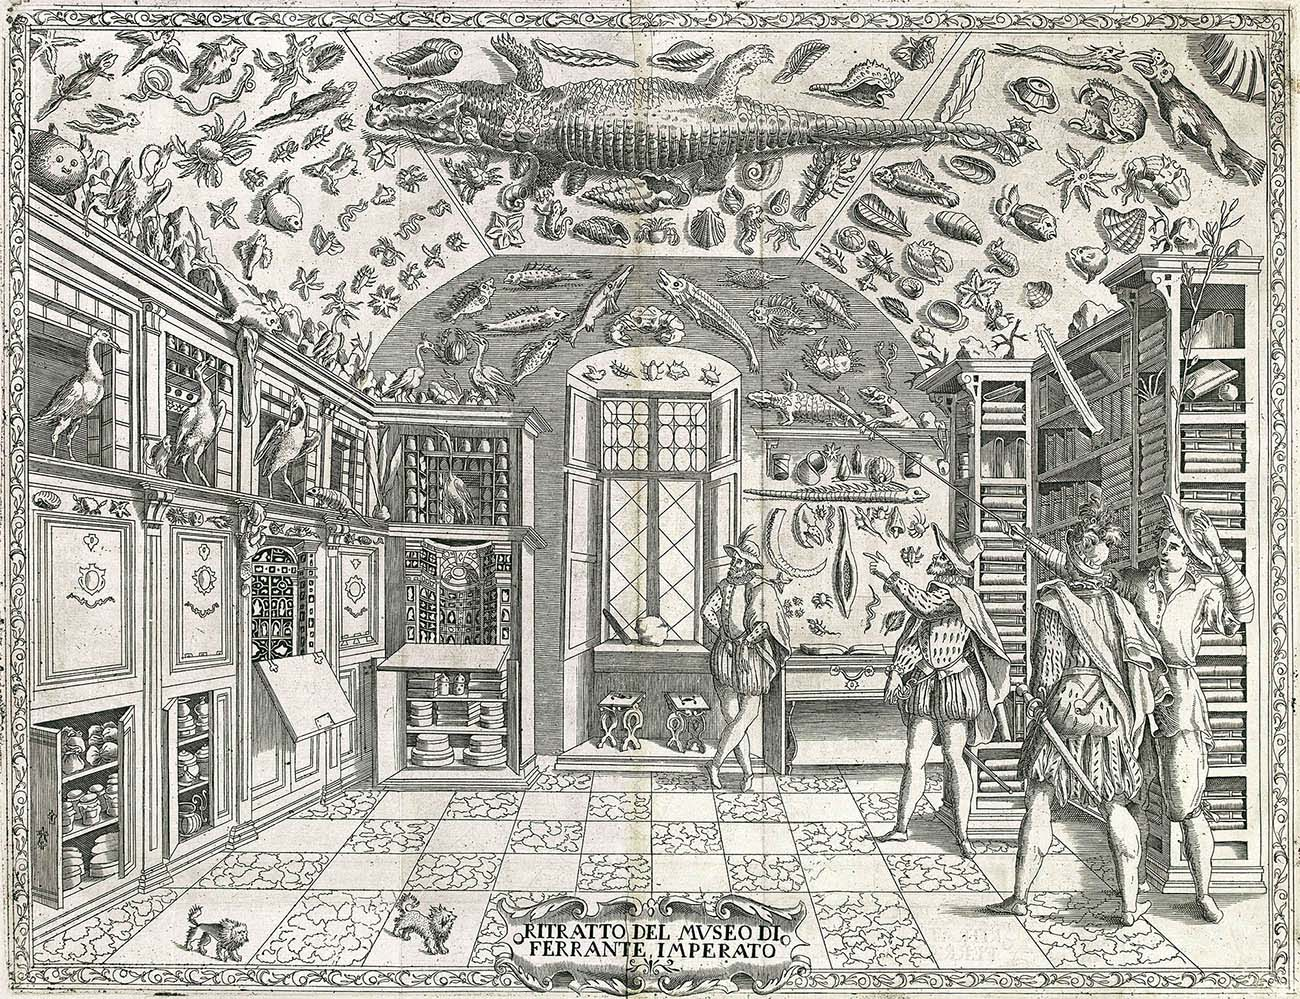 A print of four men in a room surrounded by natural history objects such as taxidermy animals and shells.